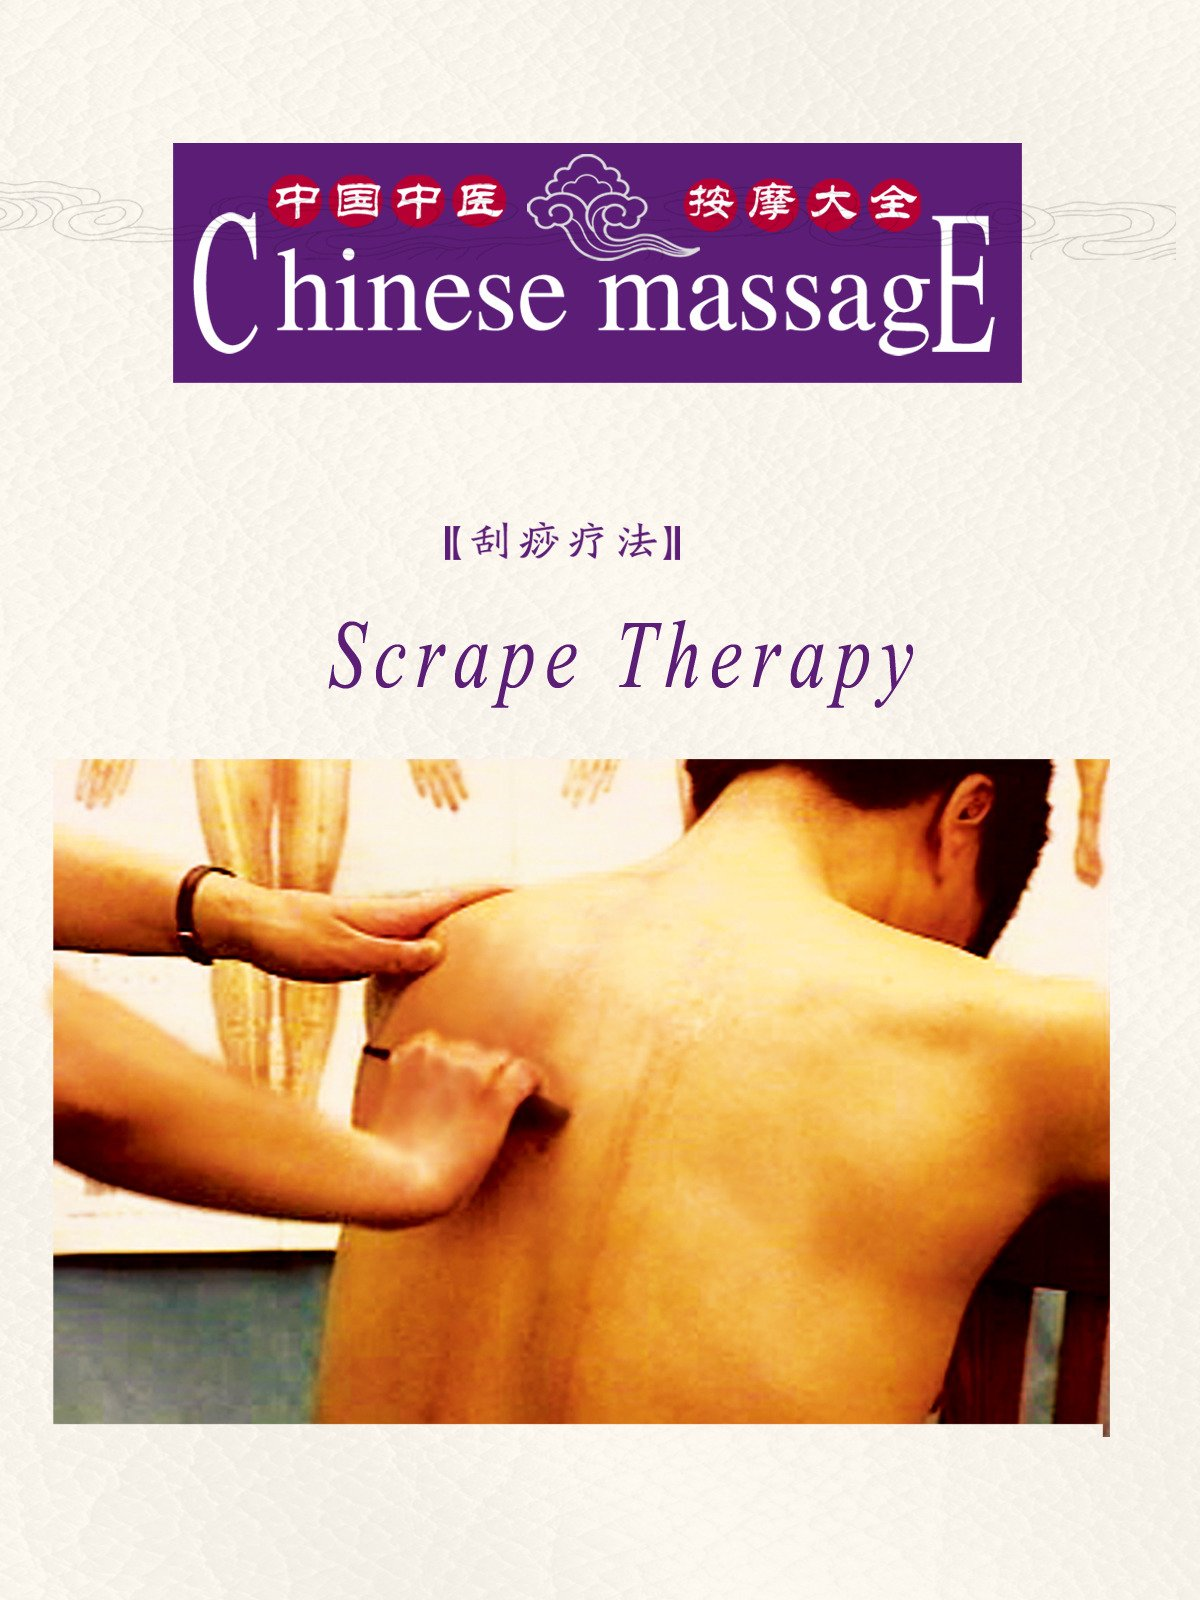 Chinese Massage-Scrape Therapy